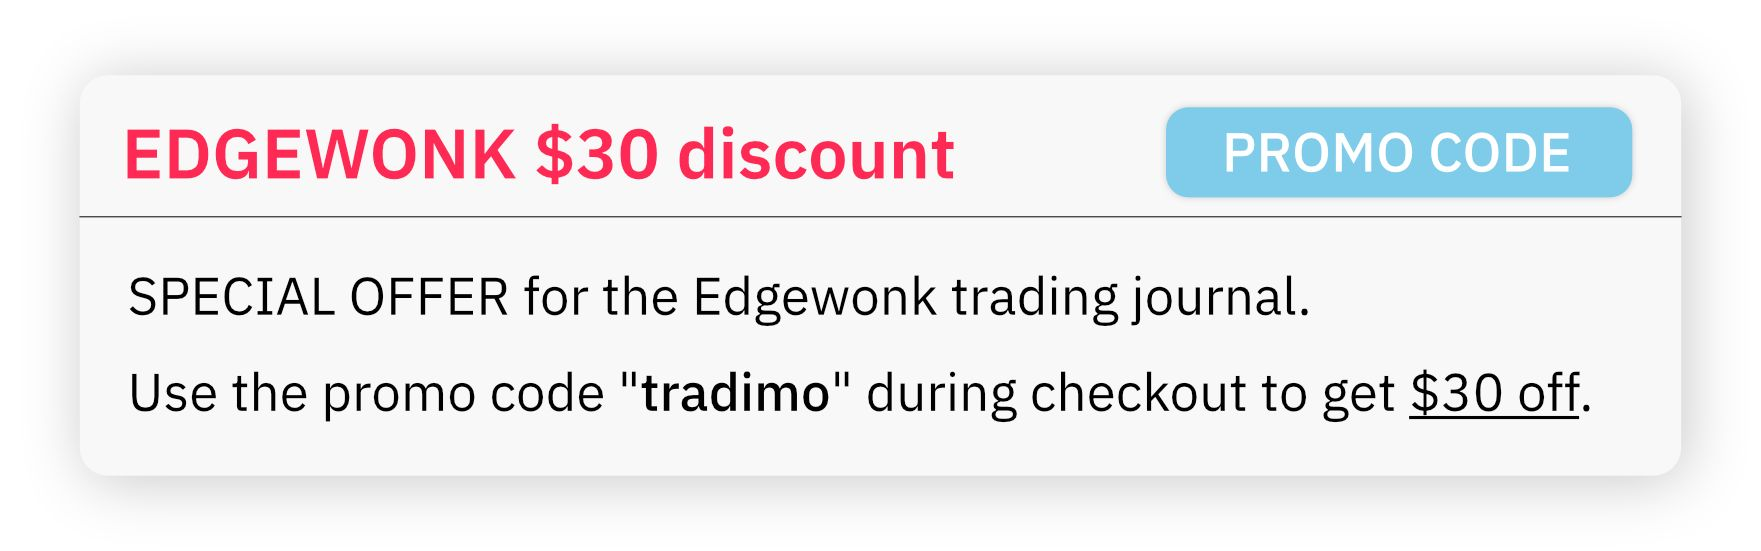 Edgewonk trading journal discount